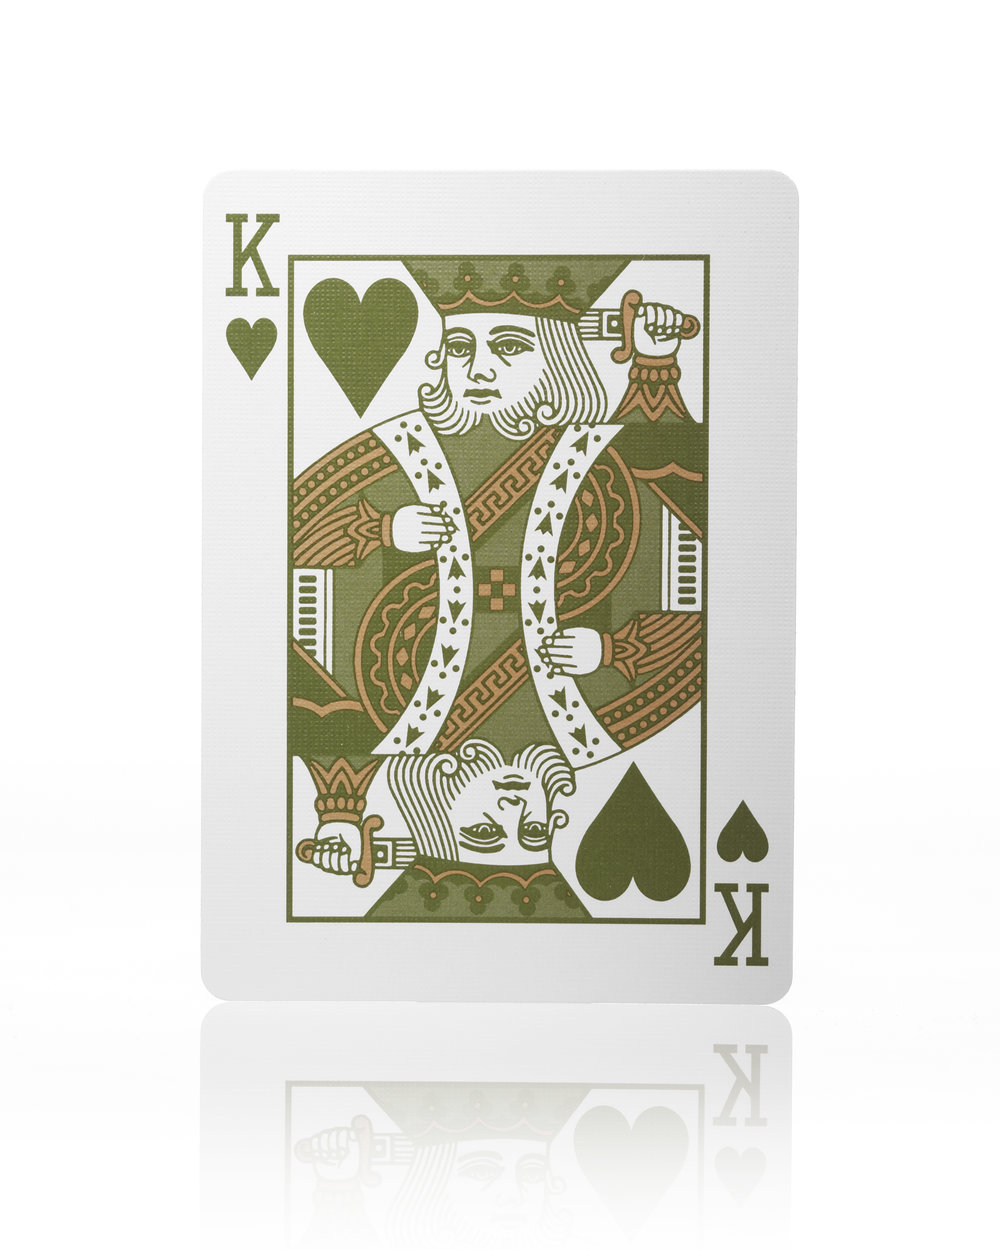 110330-PlayingCards-PlayingCards-015 copy.jpg